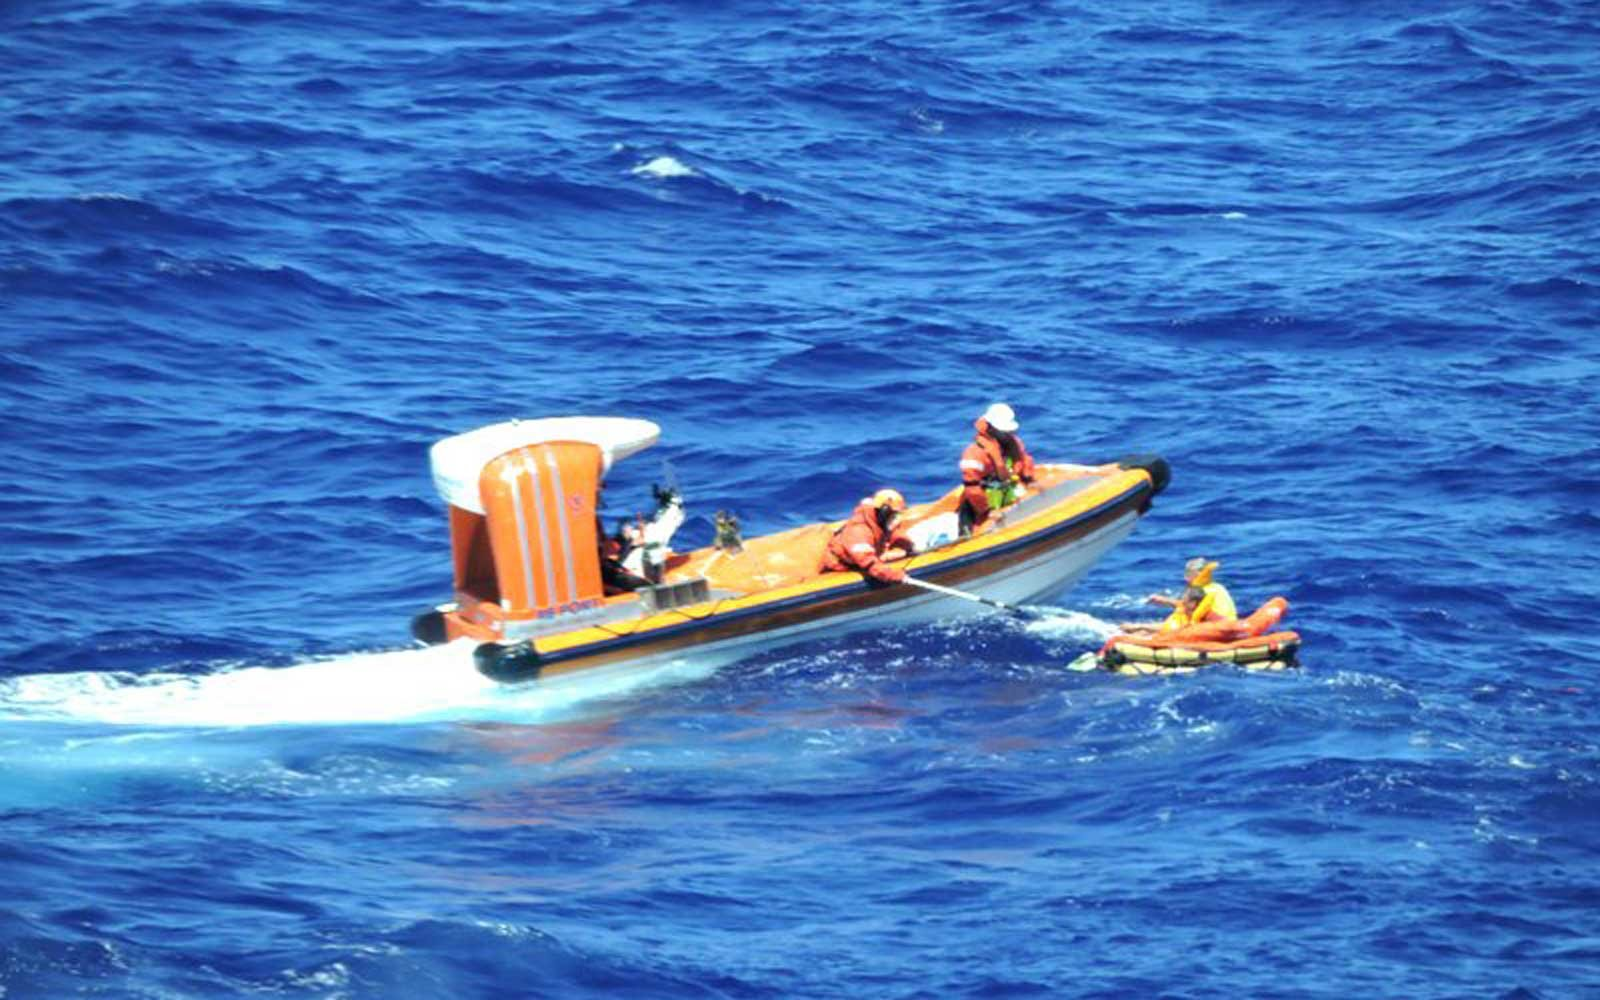 Princess Cruise and U.S. Coast Guard rescues plane passengers in Caribbean